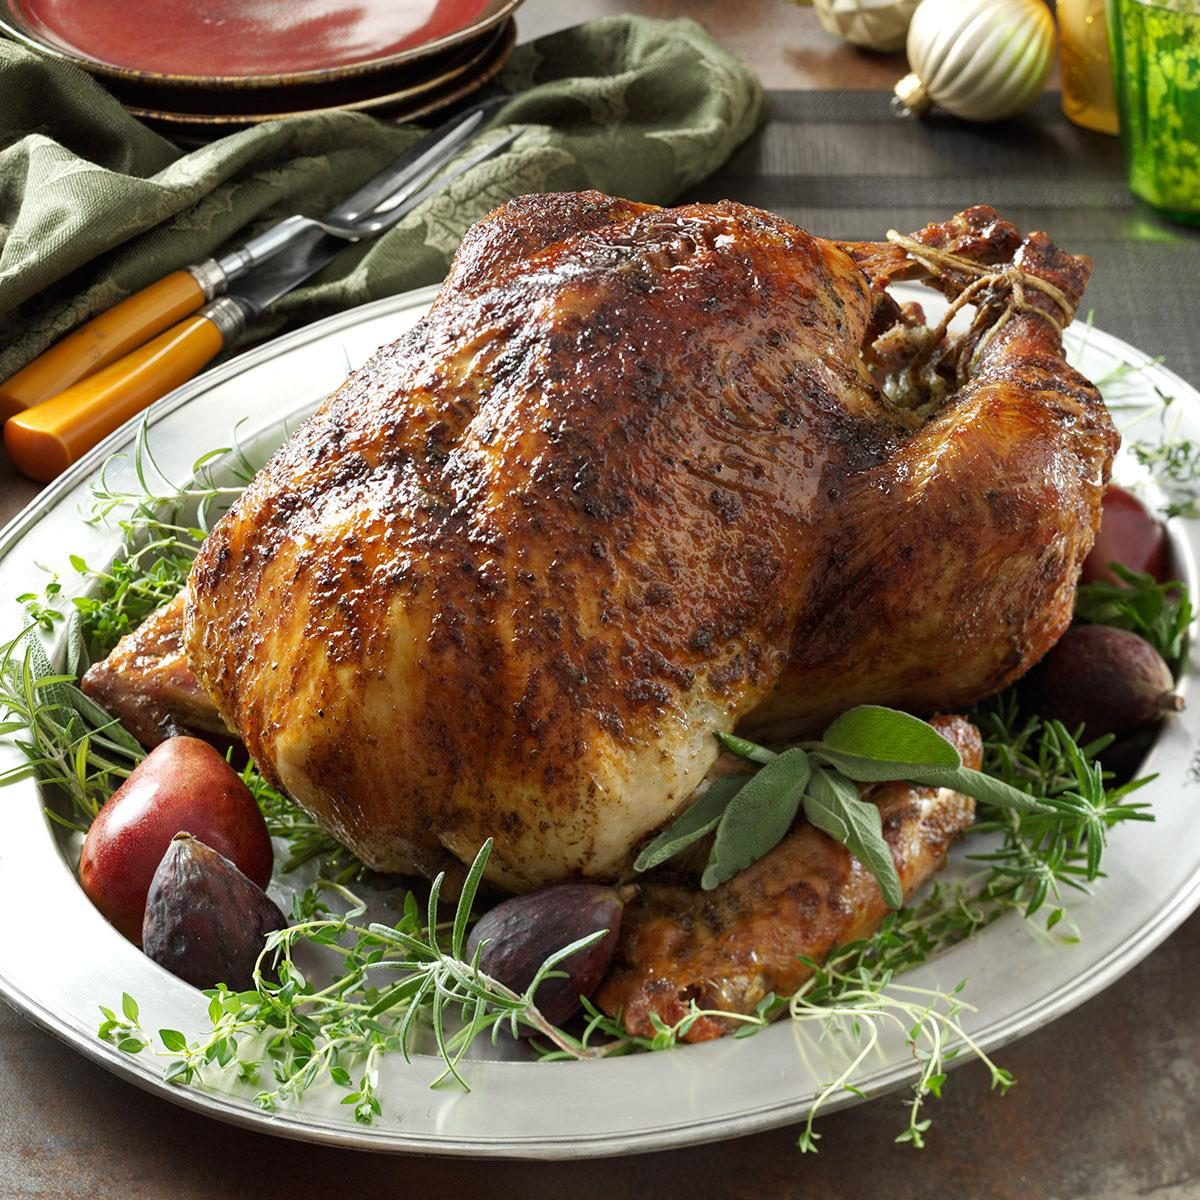 Herb-Brined Turkey Recipe | Taste of Home